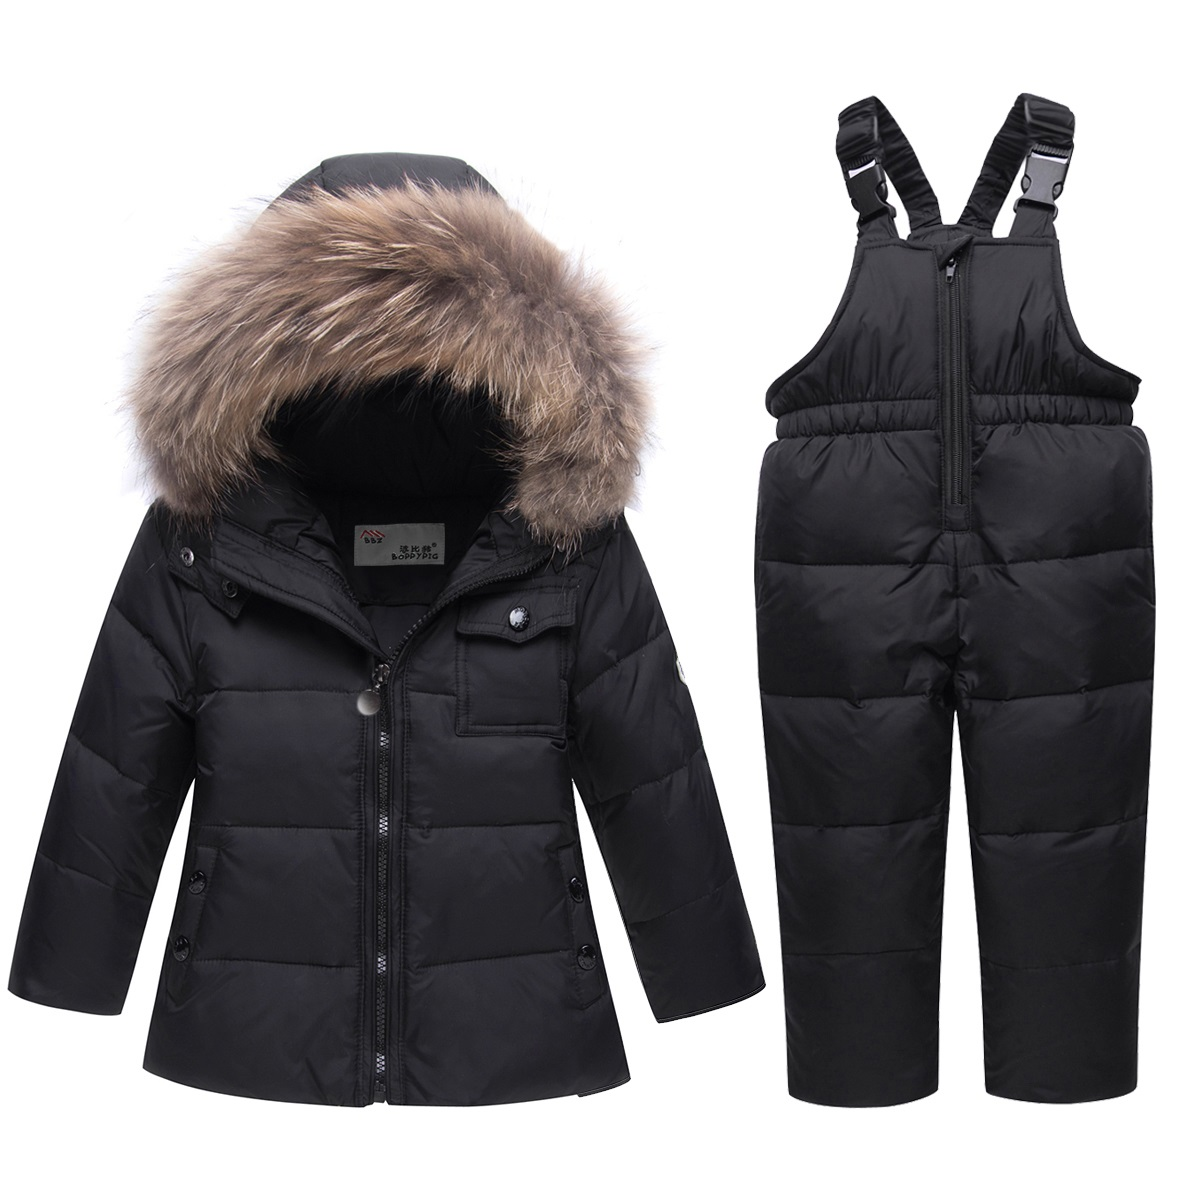 цена на ZOETOPKID -30 Degree Winter children Boy Clothes set Warm Down Jacket Coat + Jumpsuit For Girl 1-5 Years Kids Baby Girl Snowsuit